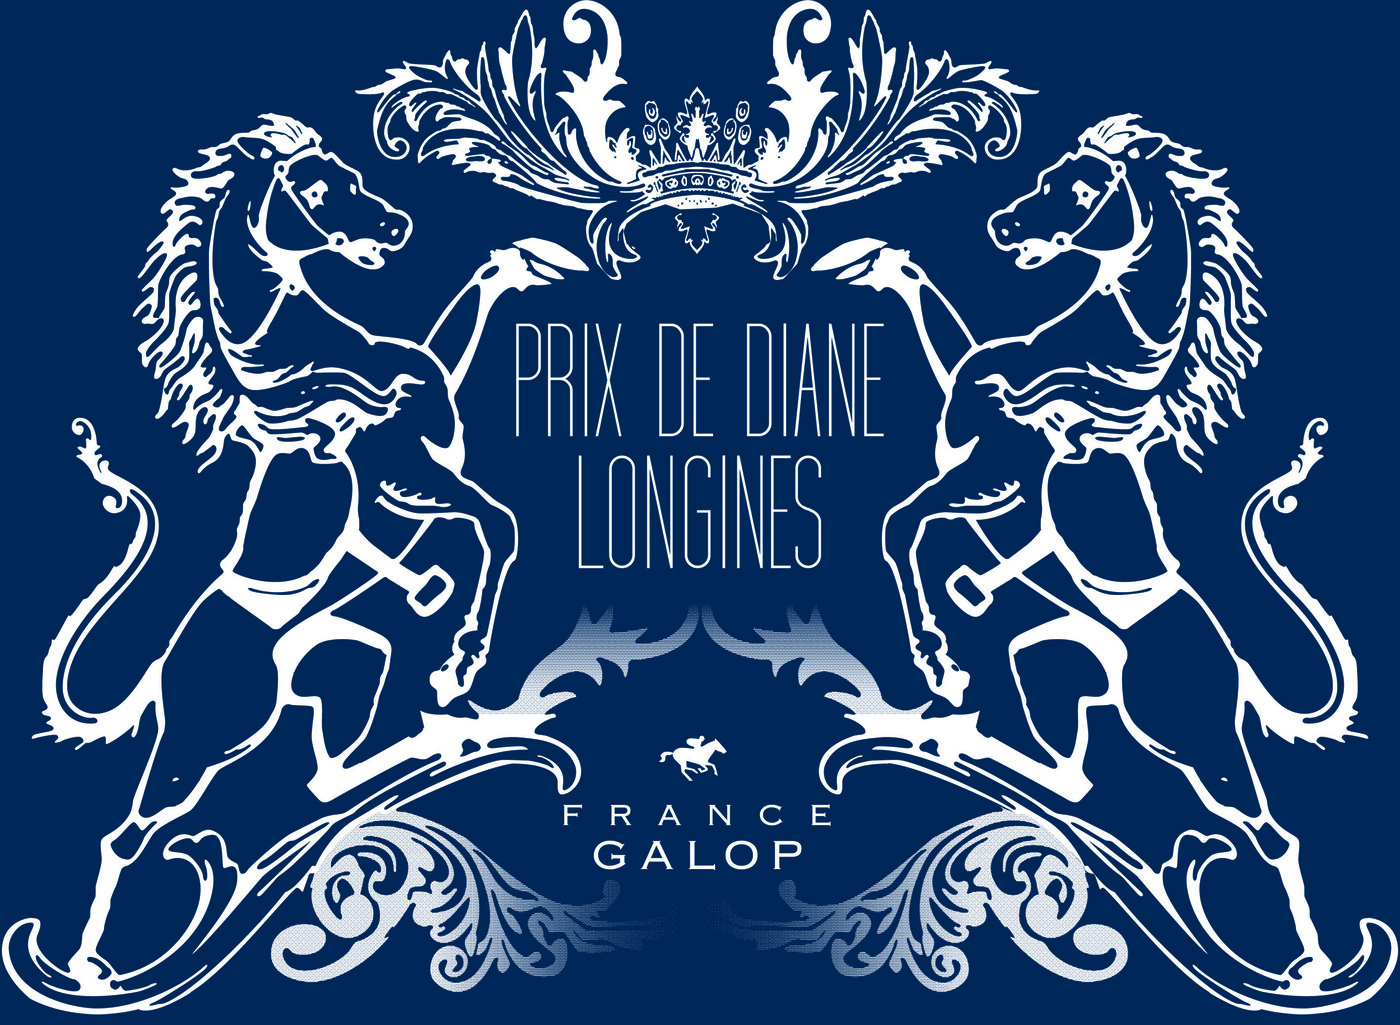 Longines Flat Racing Event: Longines and the Prix de Diane promoting the art of elegance 8